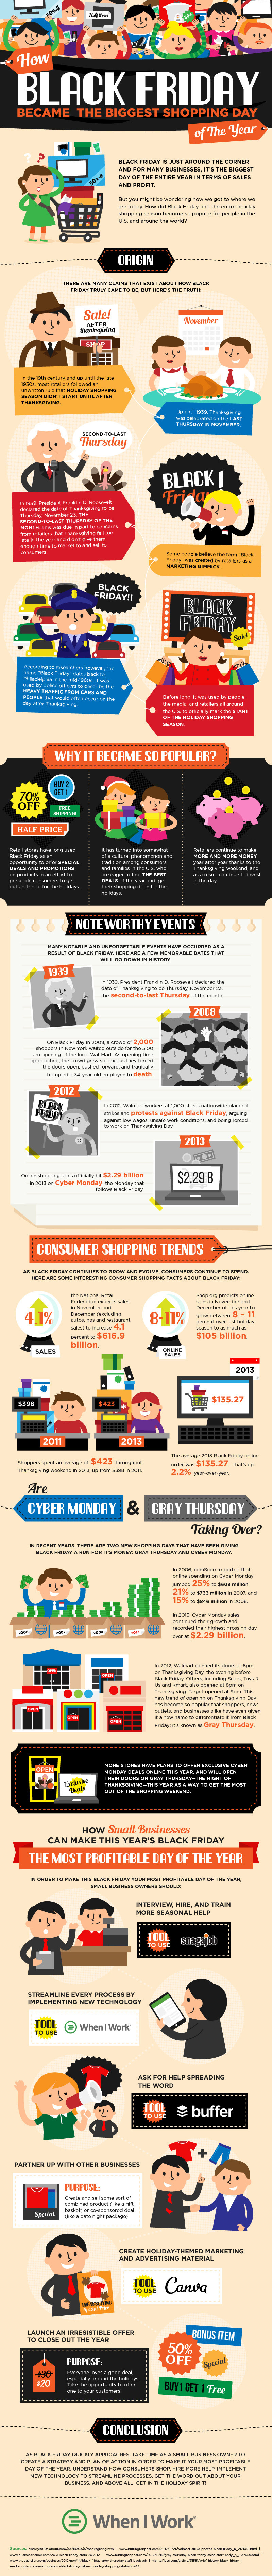 Infographic: How Black Friday Became The Biggest Shopping Day of The Year